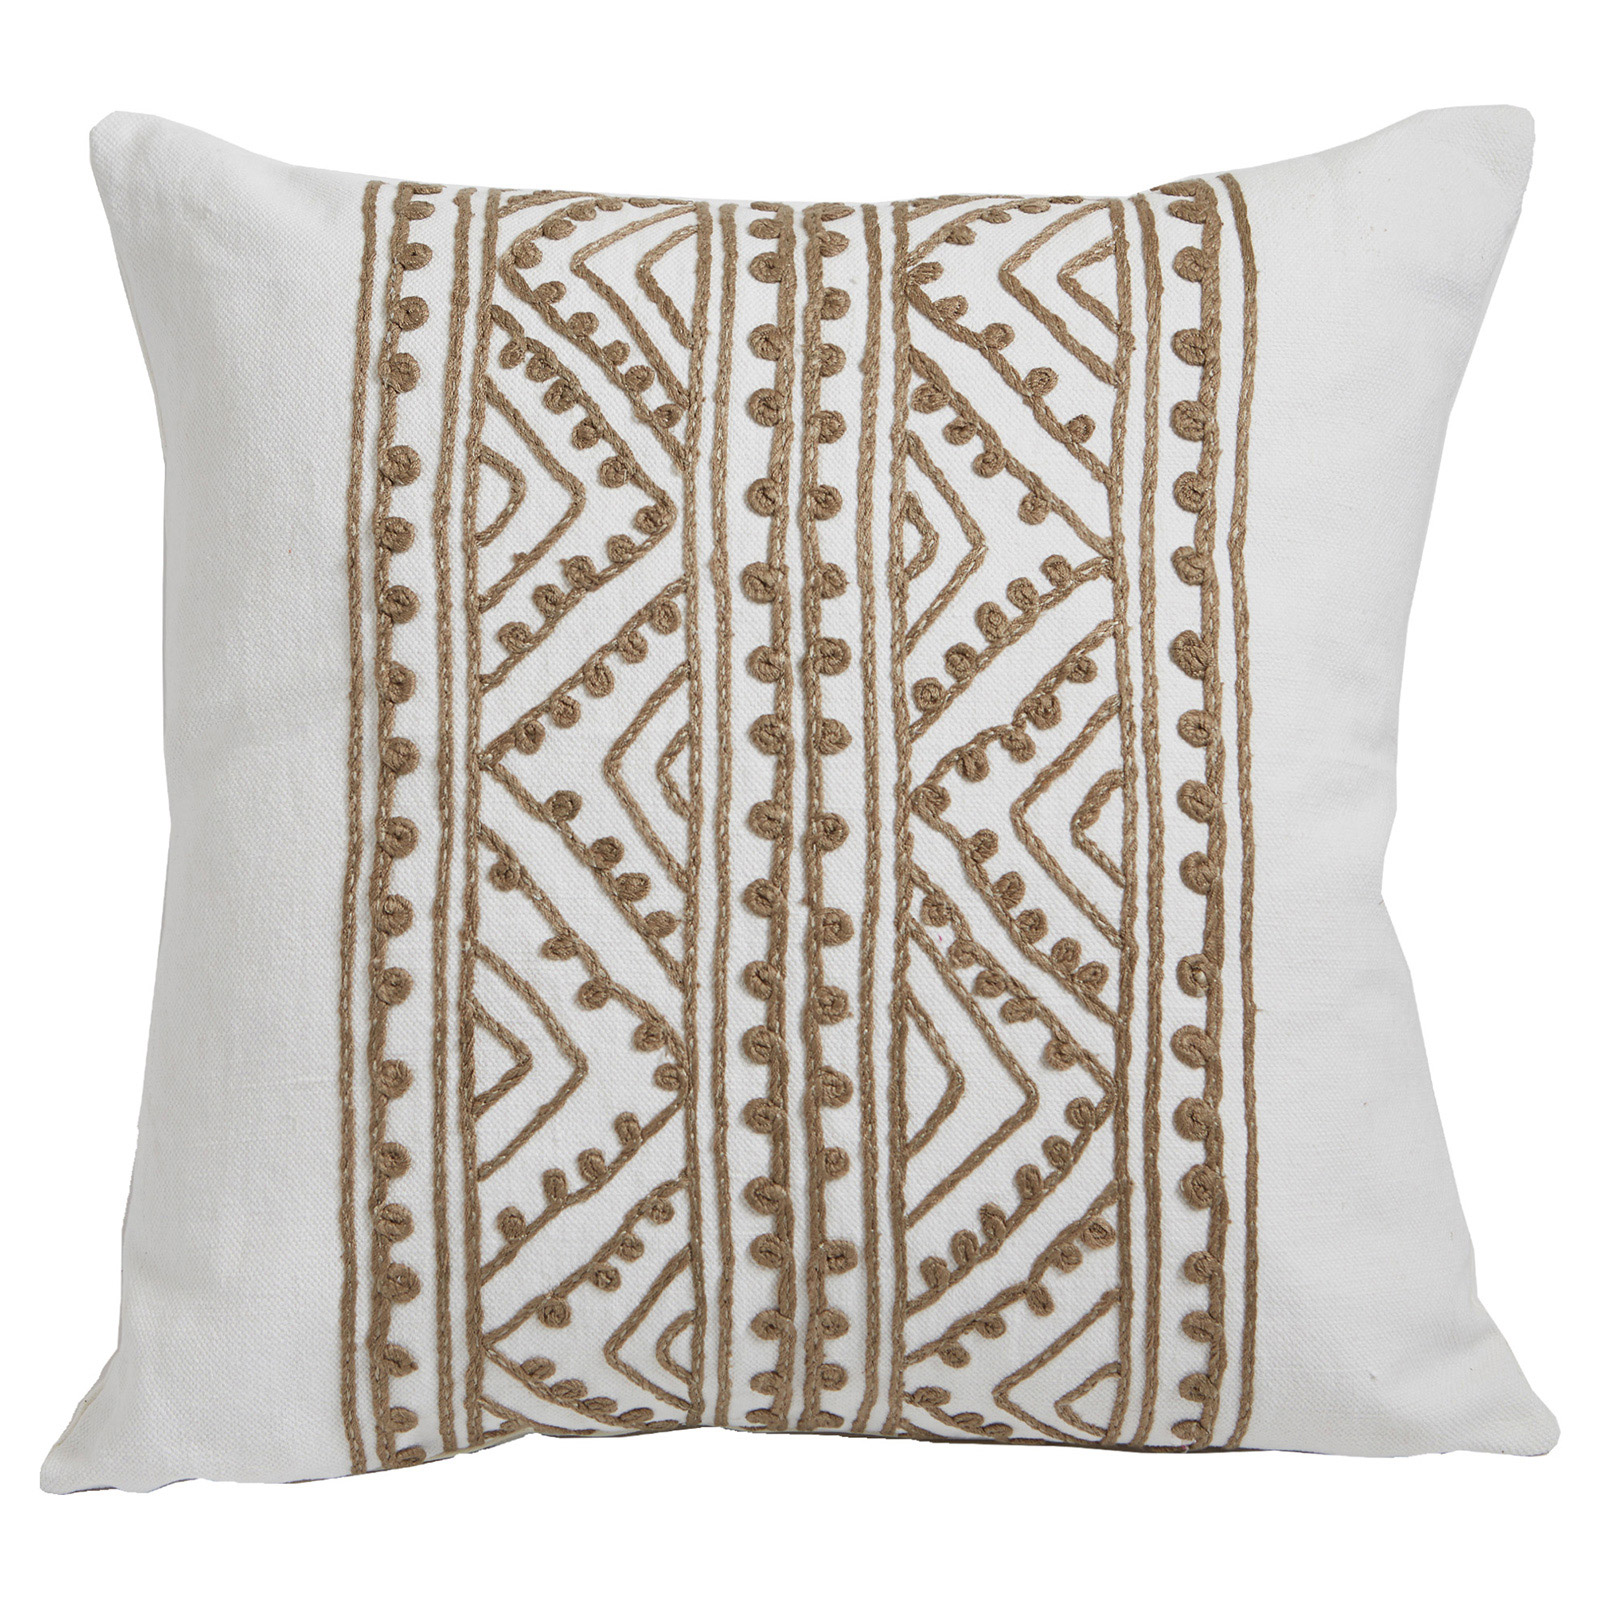 Bengali Global Silk Beige Embroidered Ivory Pillow - 20x20